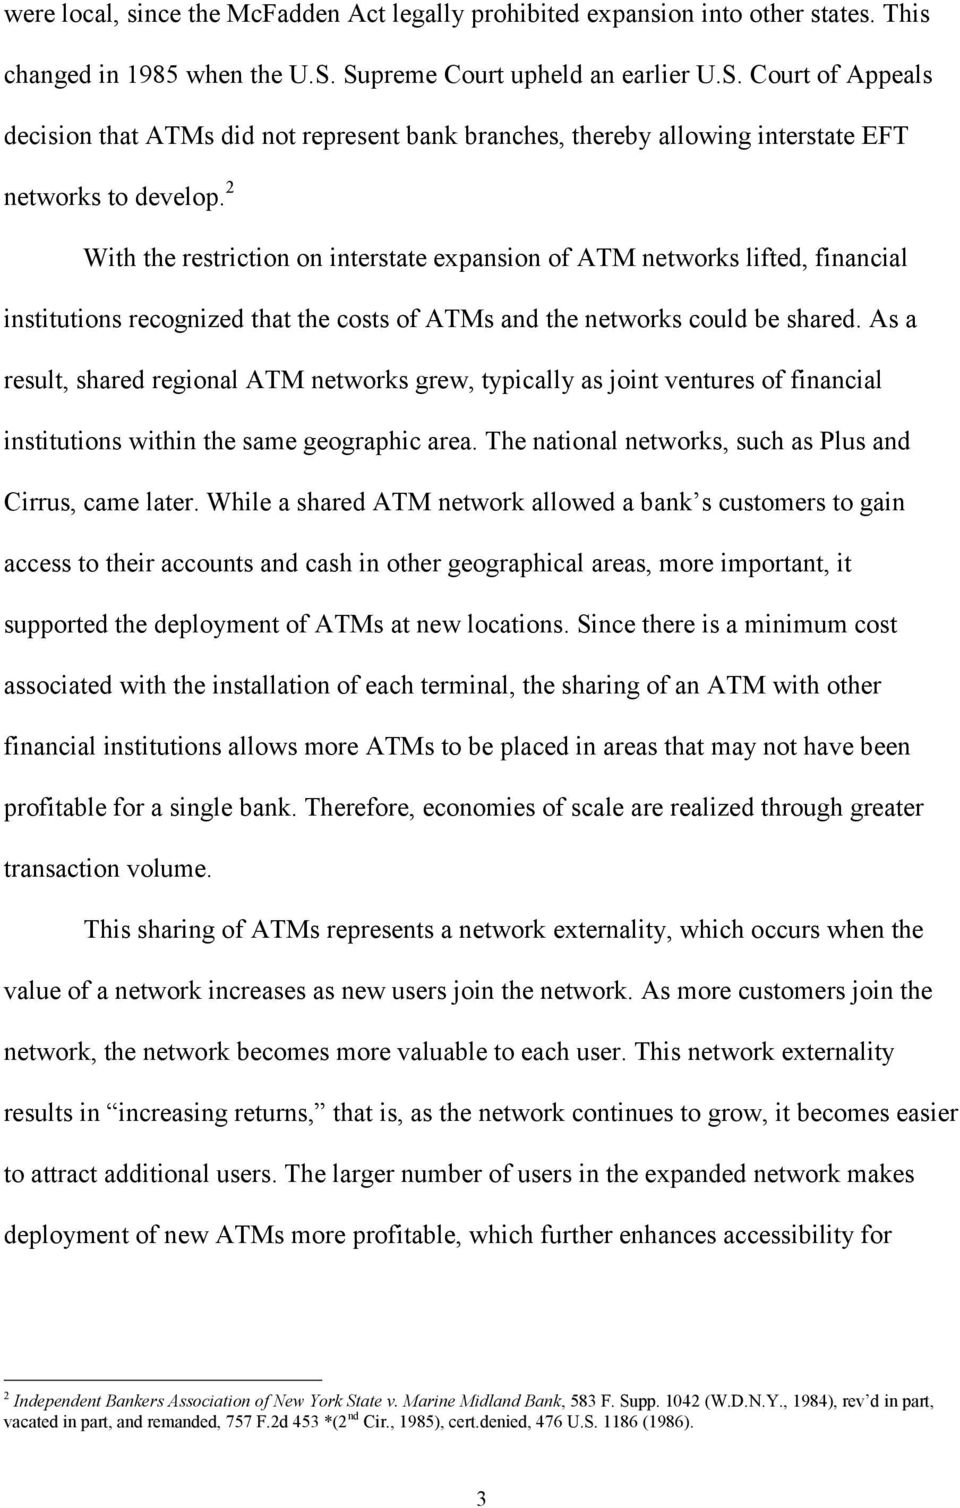 2 With the restriction on interstate expansion of ATM networks lifted, financial institutions recognized that the costs of ATMs and the networks could be shared.